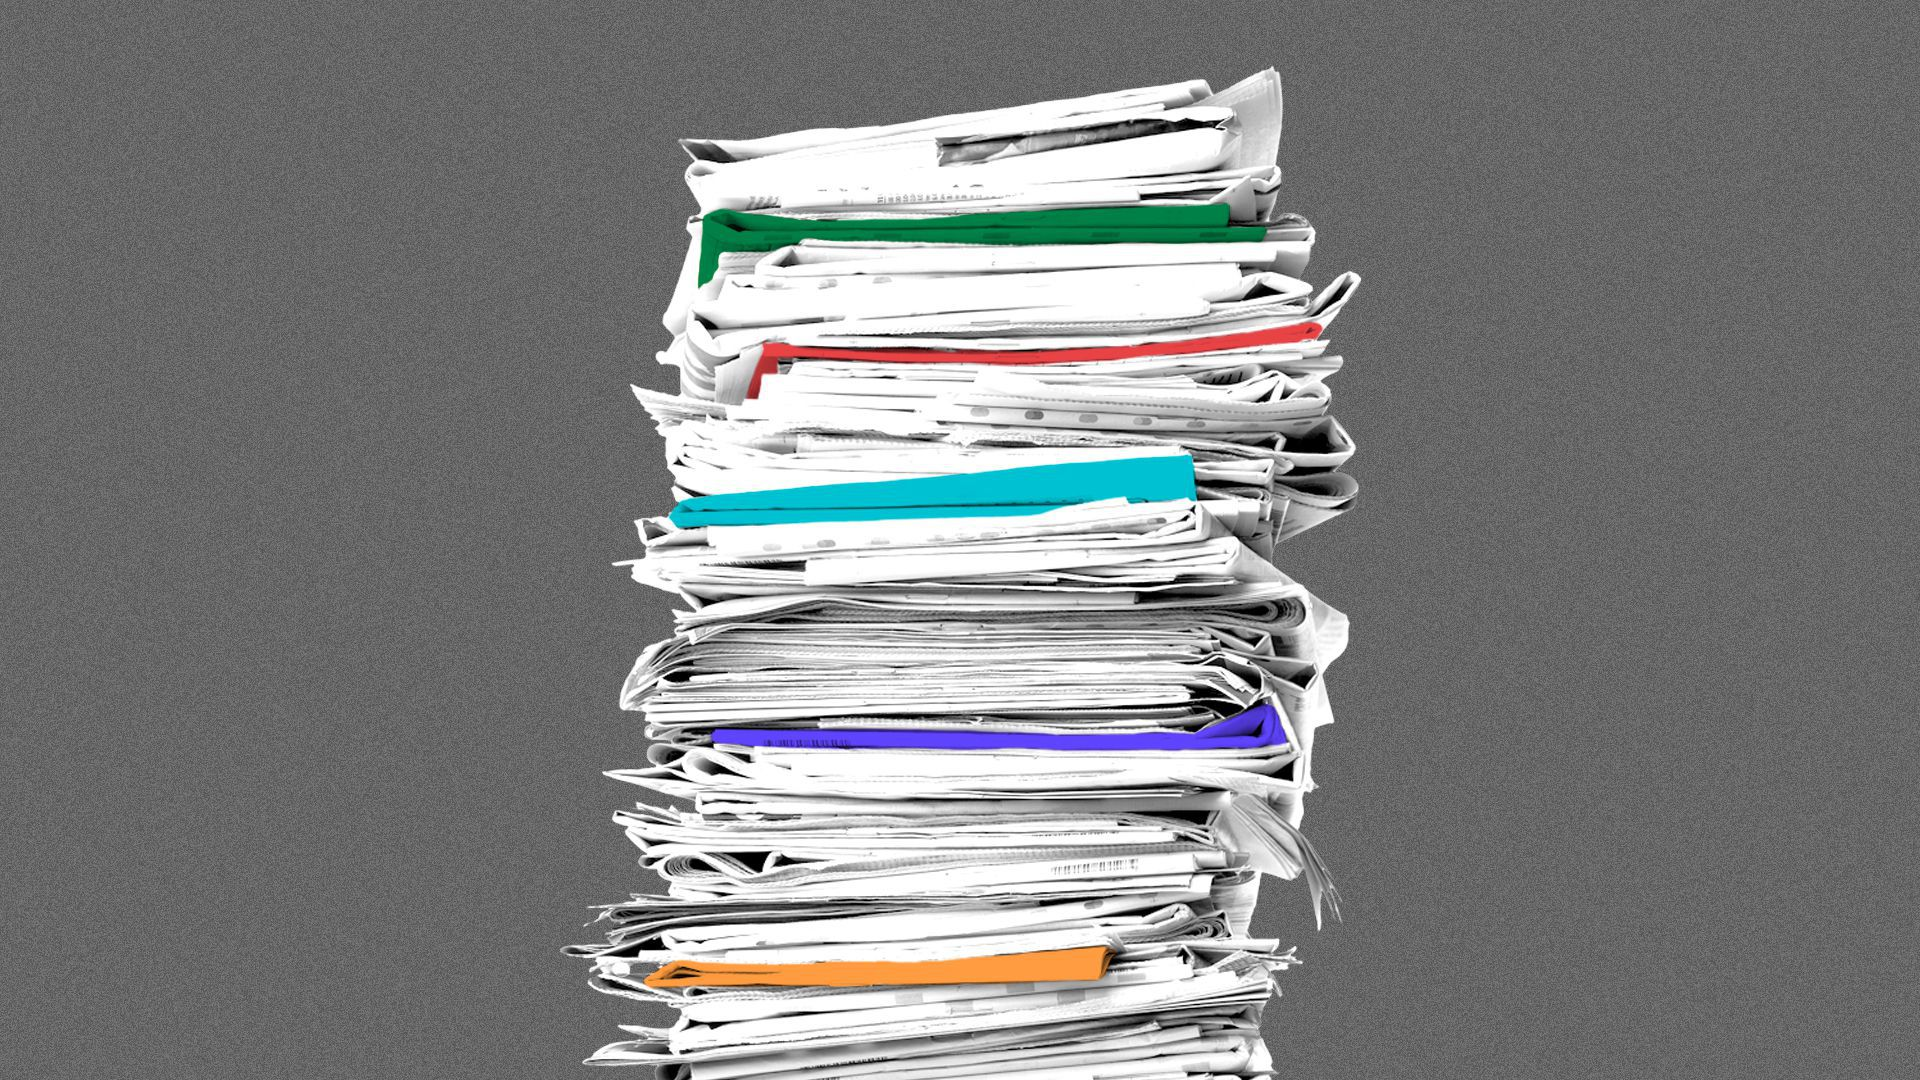 Illustration of a stack of newspapers, with some of them tinted different colors.